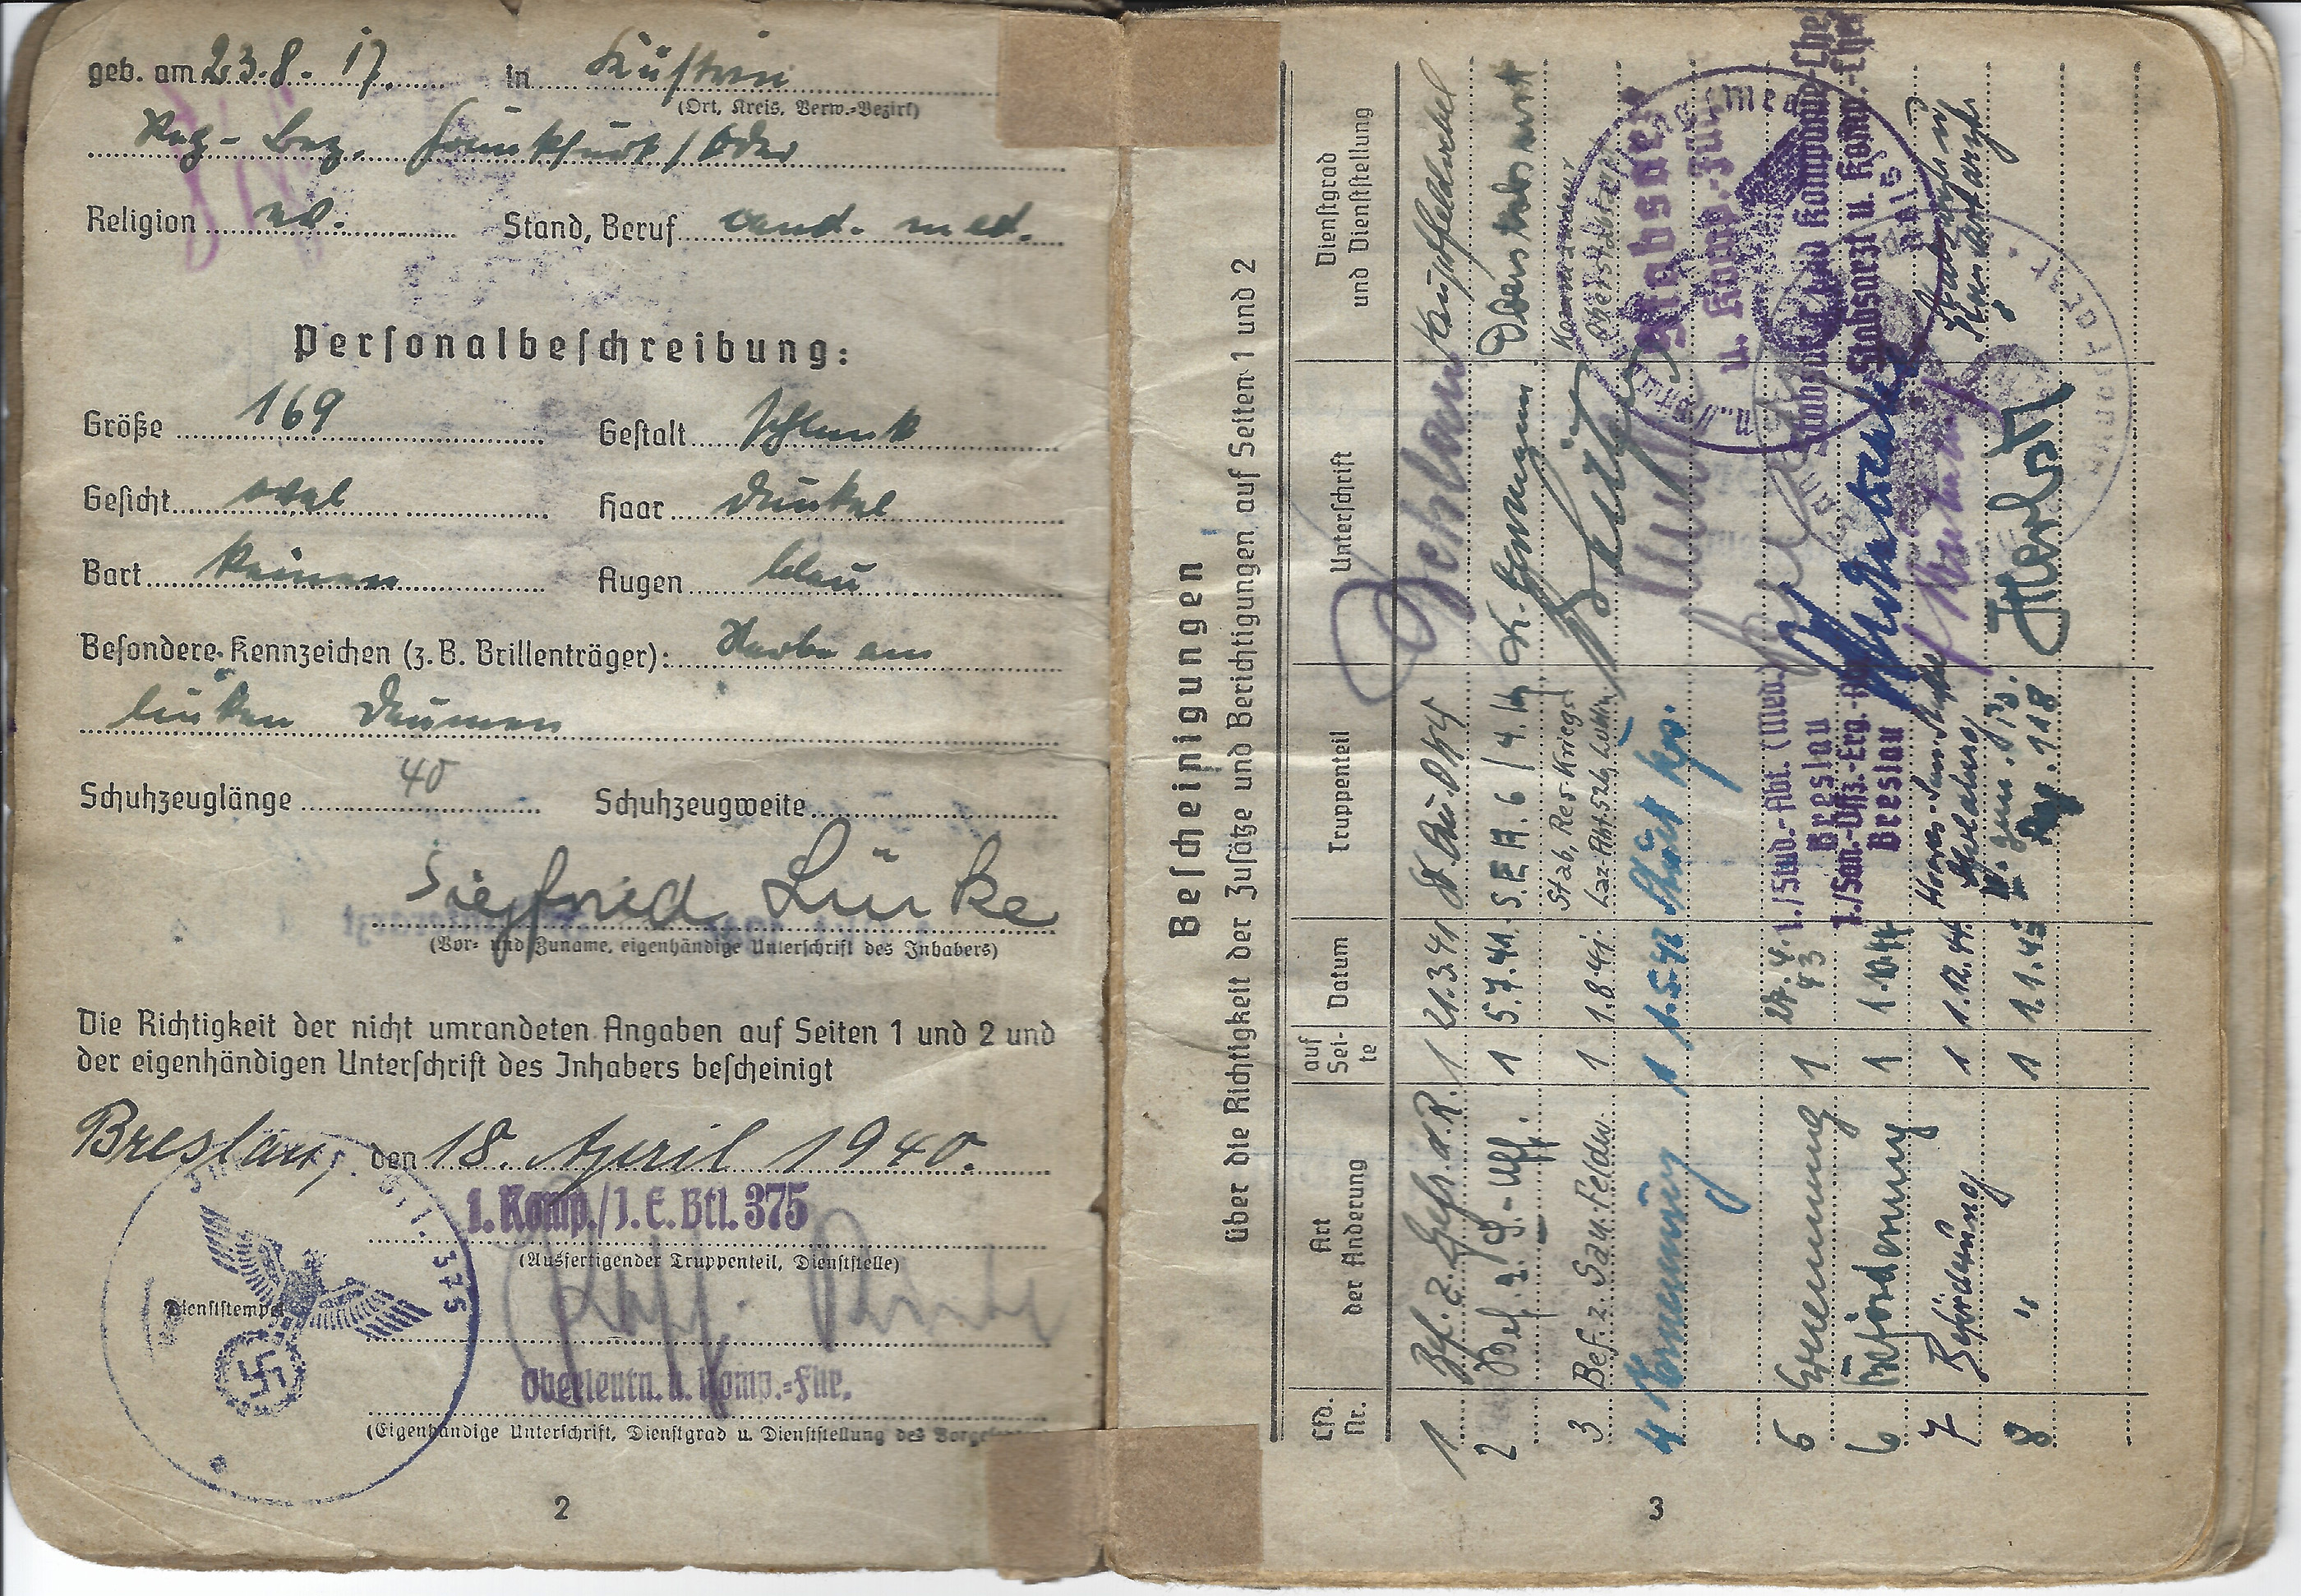 Here you will find the soldier's personal details, and the issuing unit of the Soldbuch